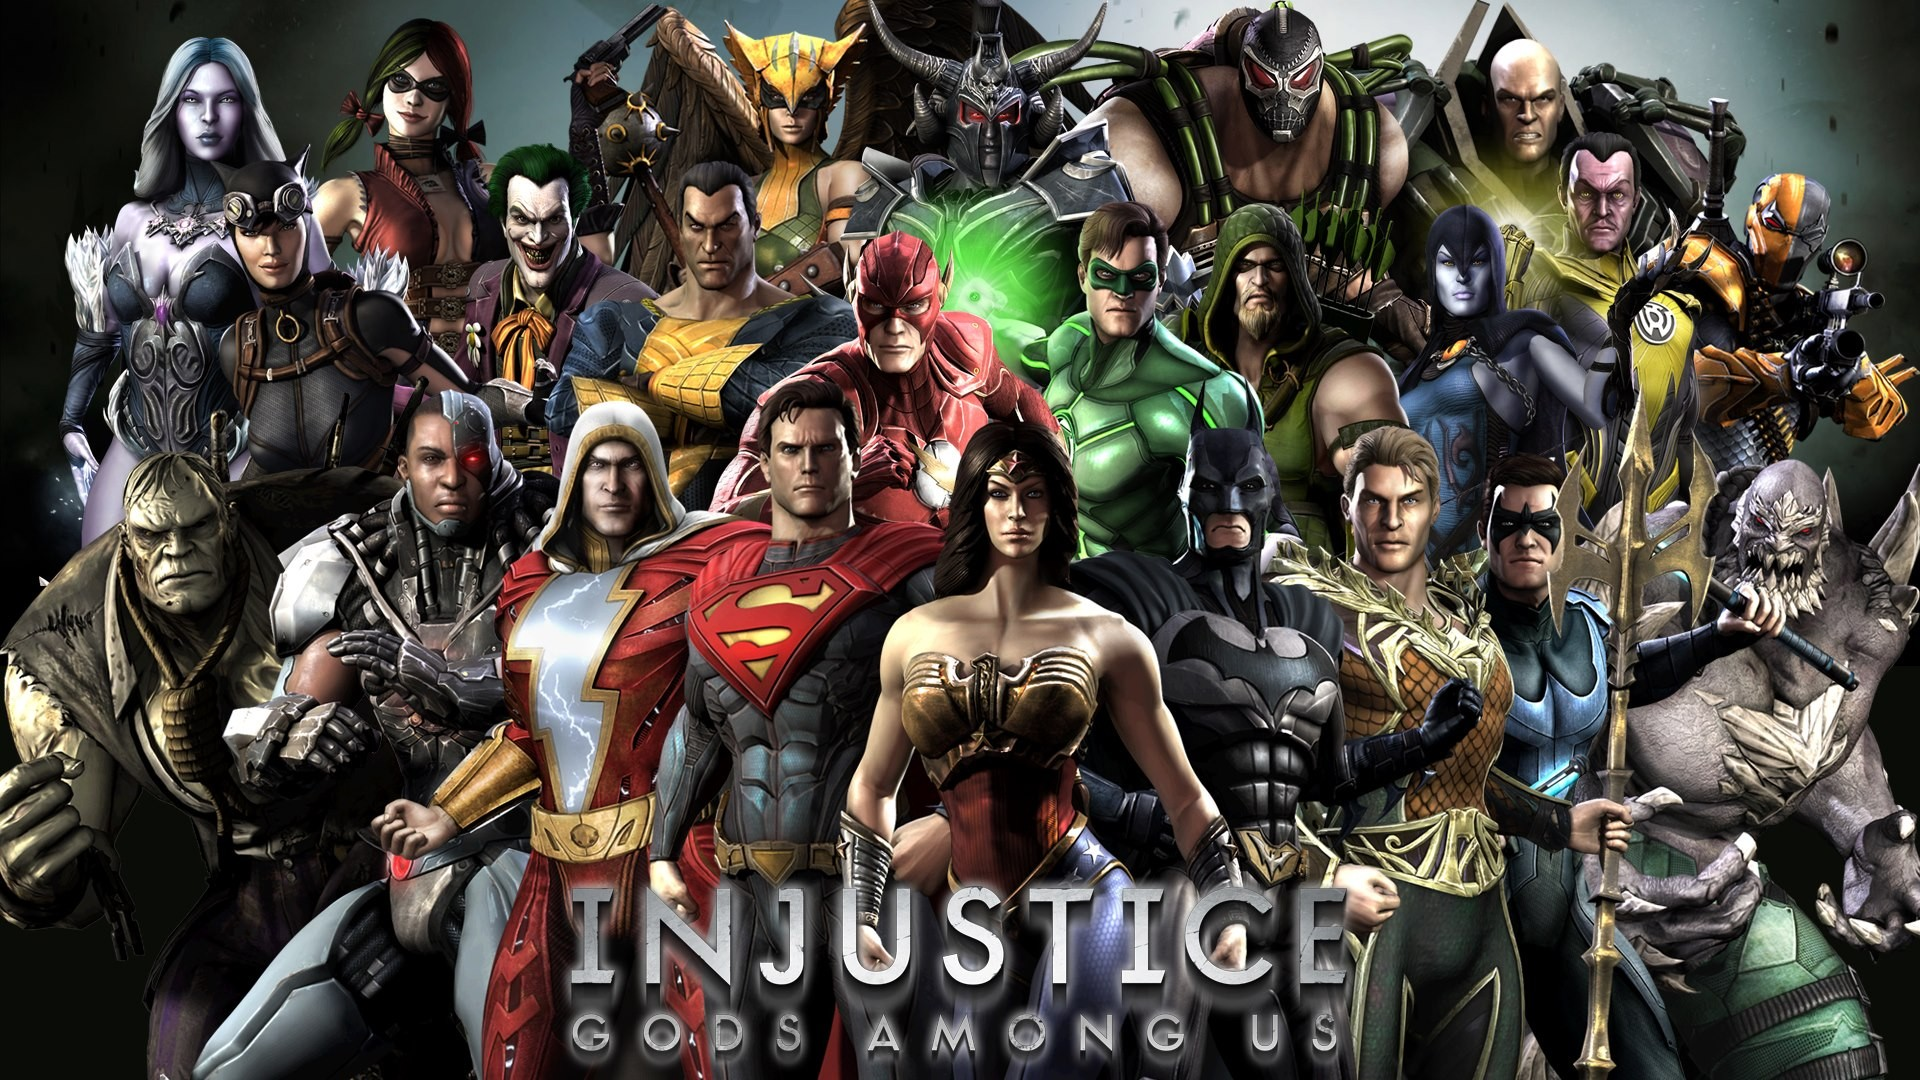 Injustice Gods Among Us Wallpaper Widescreen 226471 Hd